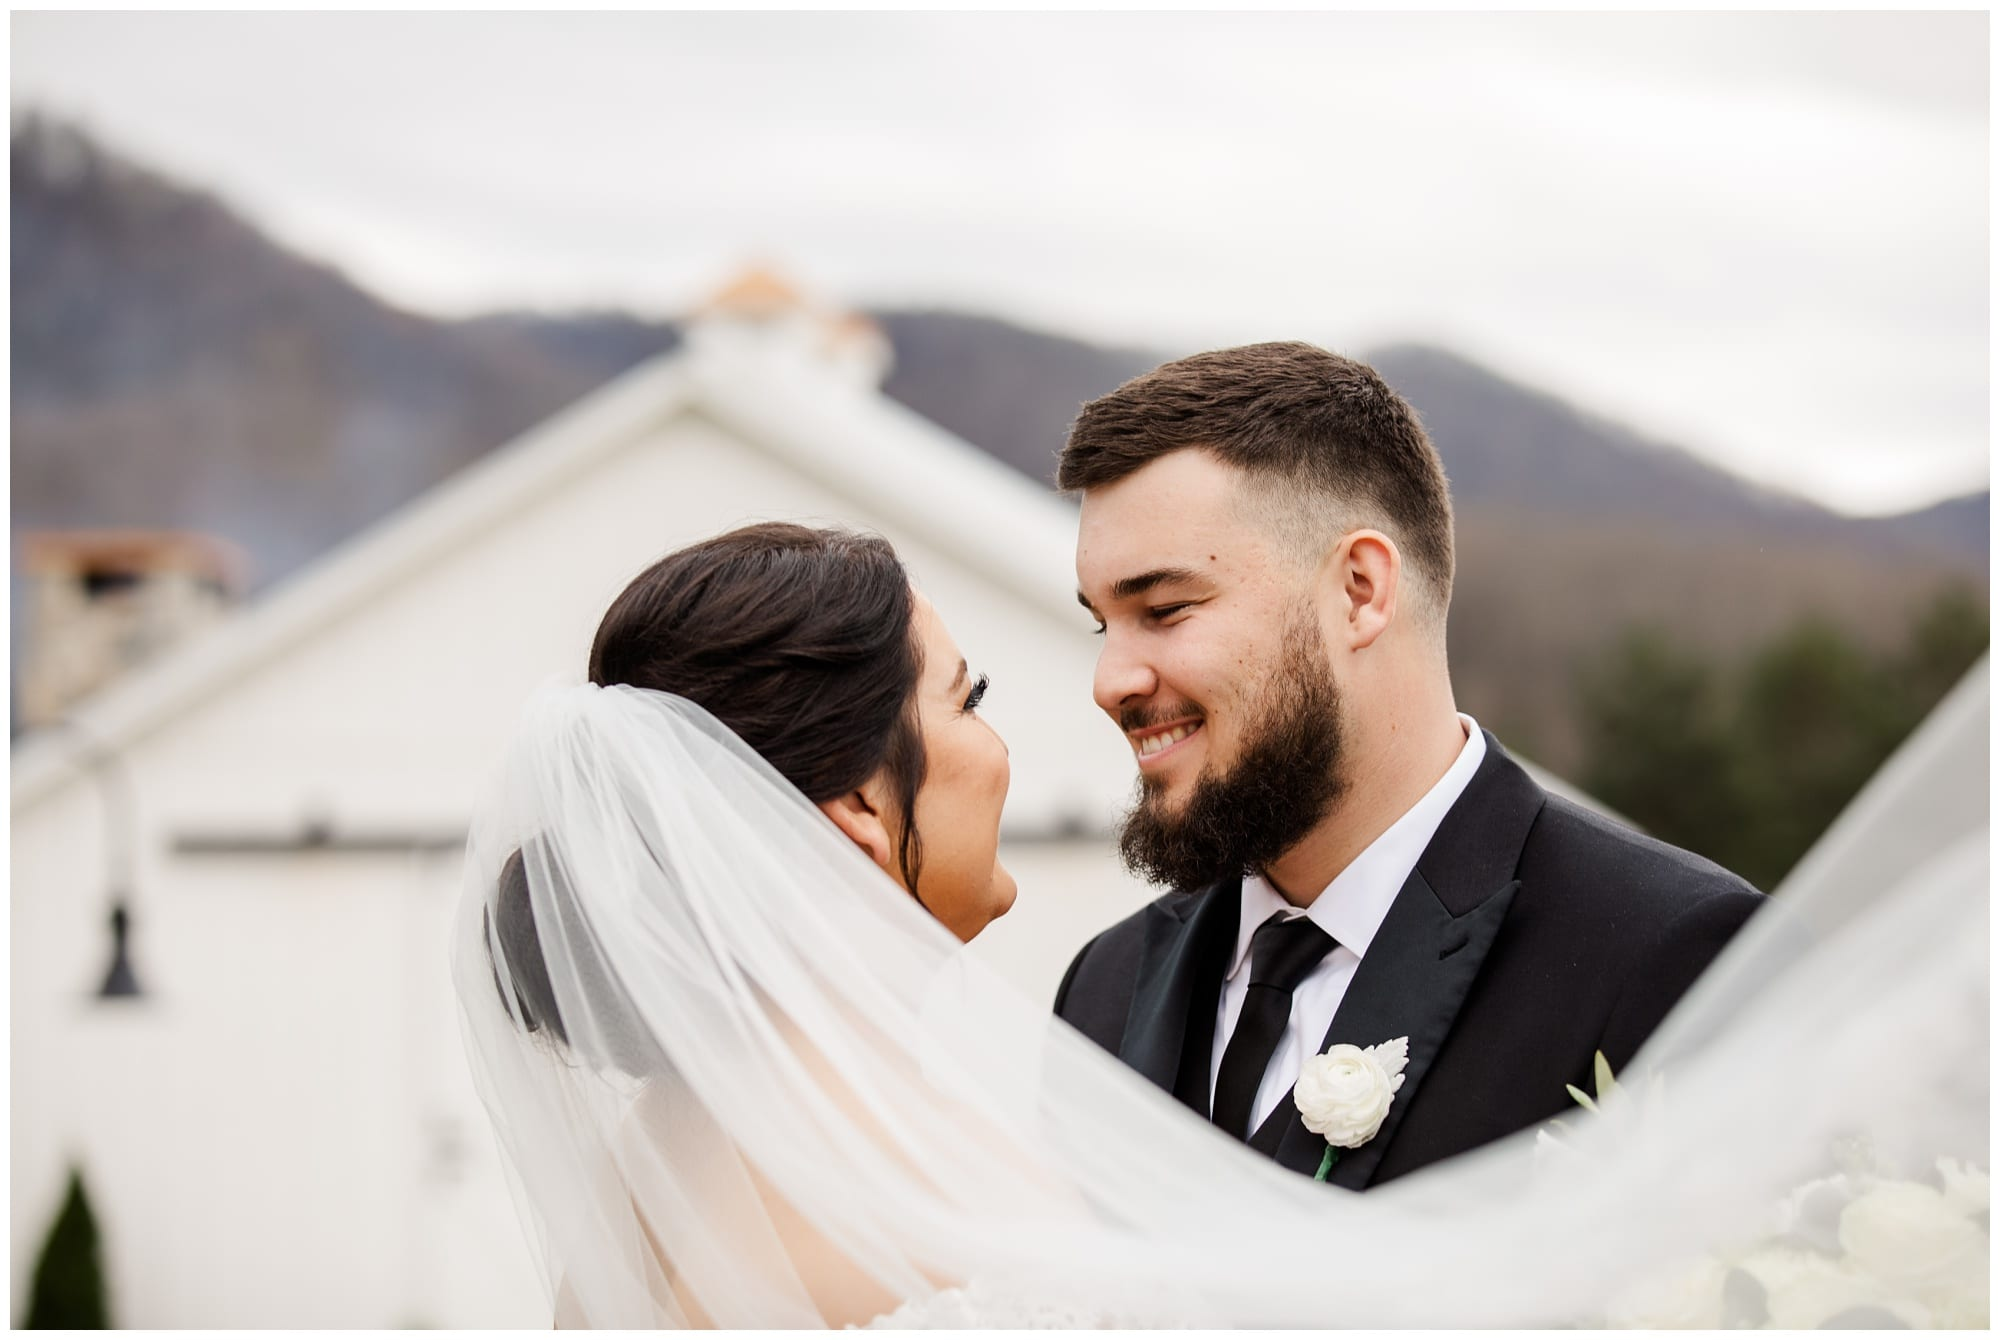 Veil Photo with bride and groom with venue in background